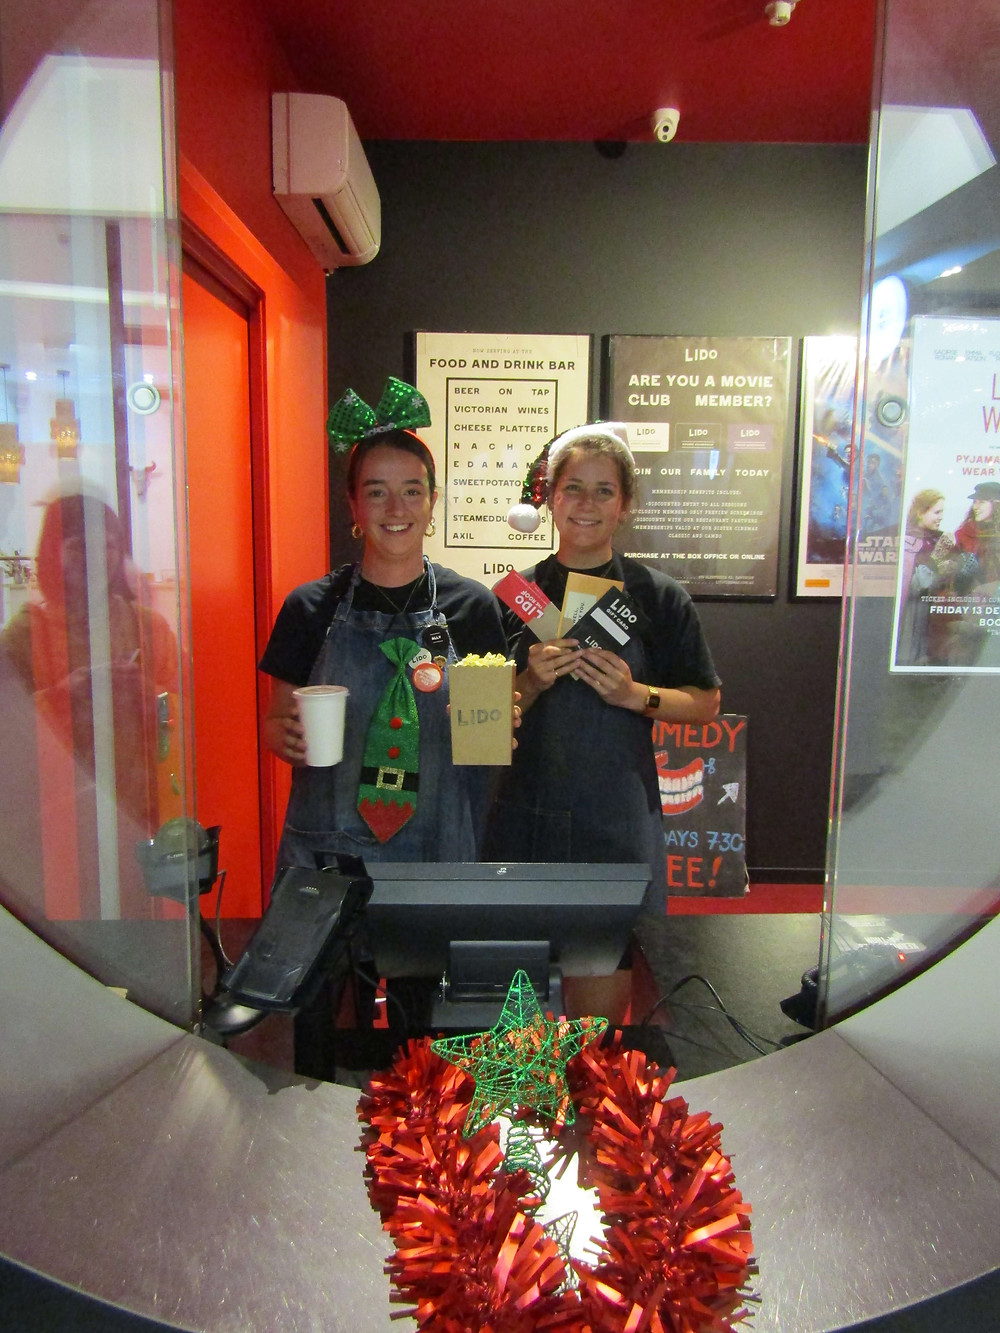 Ally (left) and Coco (right) from Lido Cinemas with gift packs and giftcards - the perfect stocking stuffer.